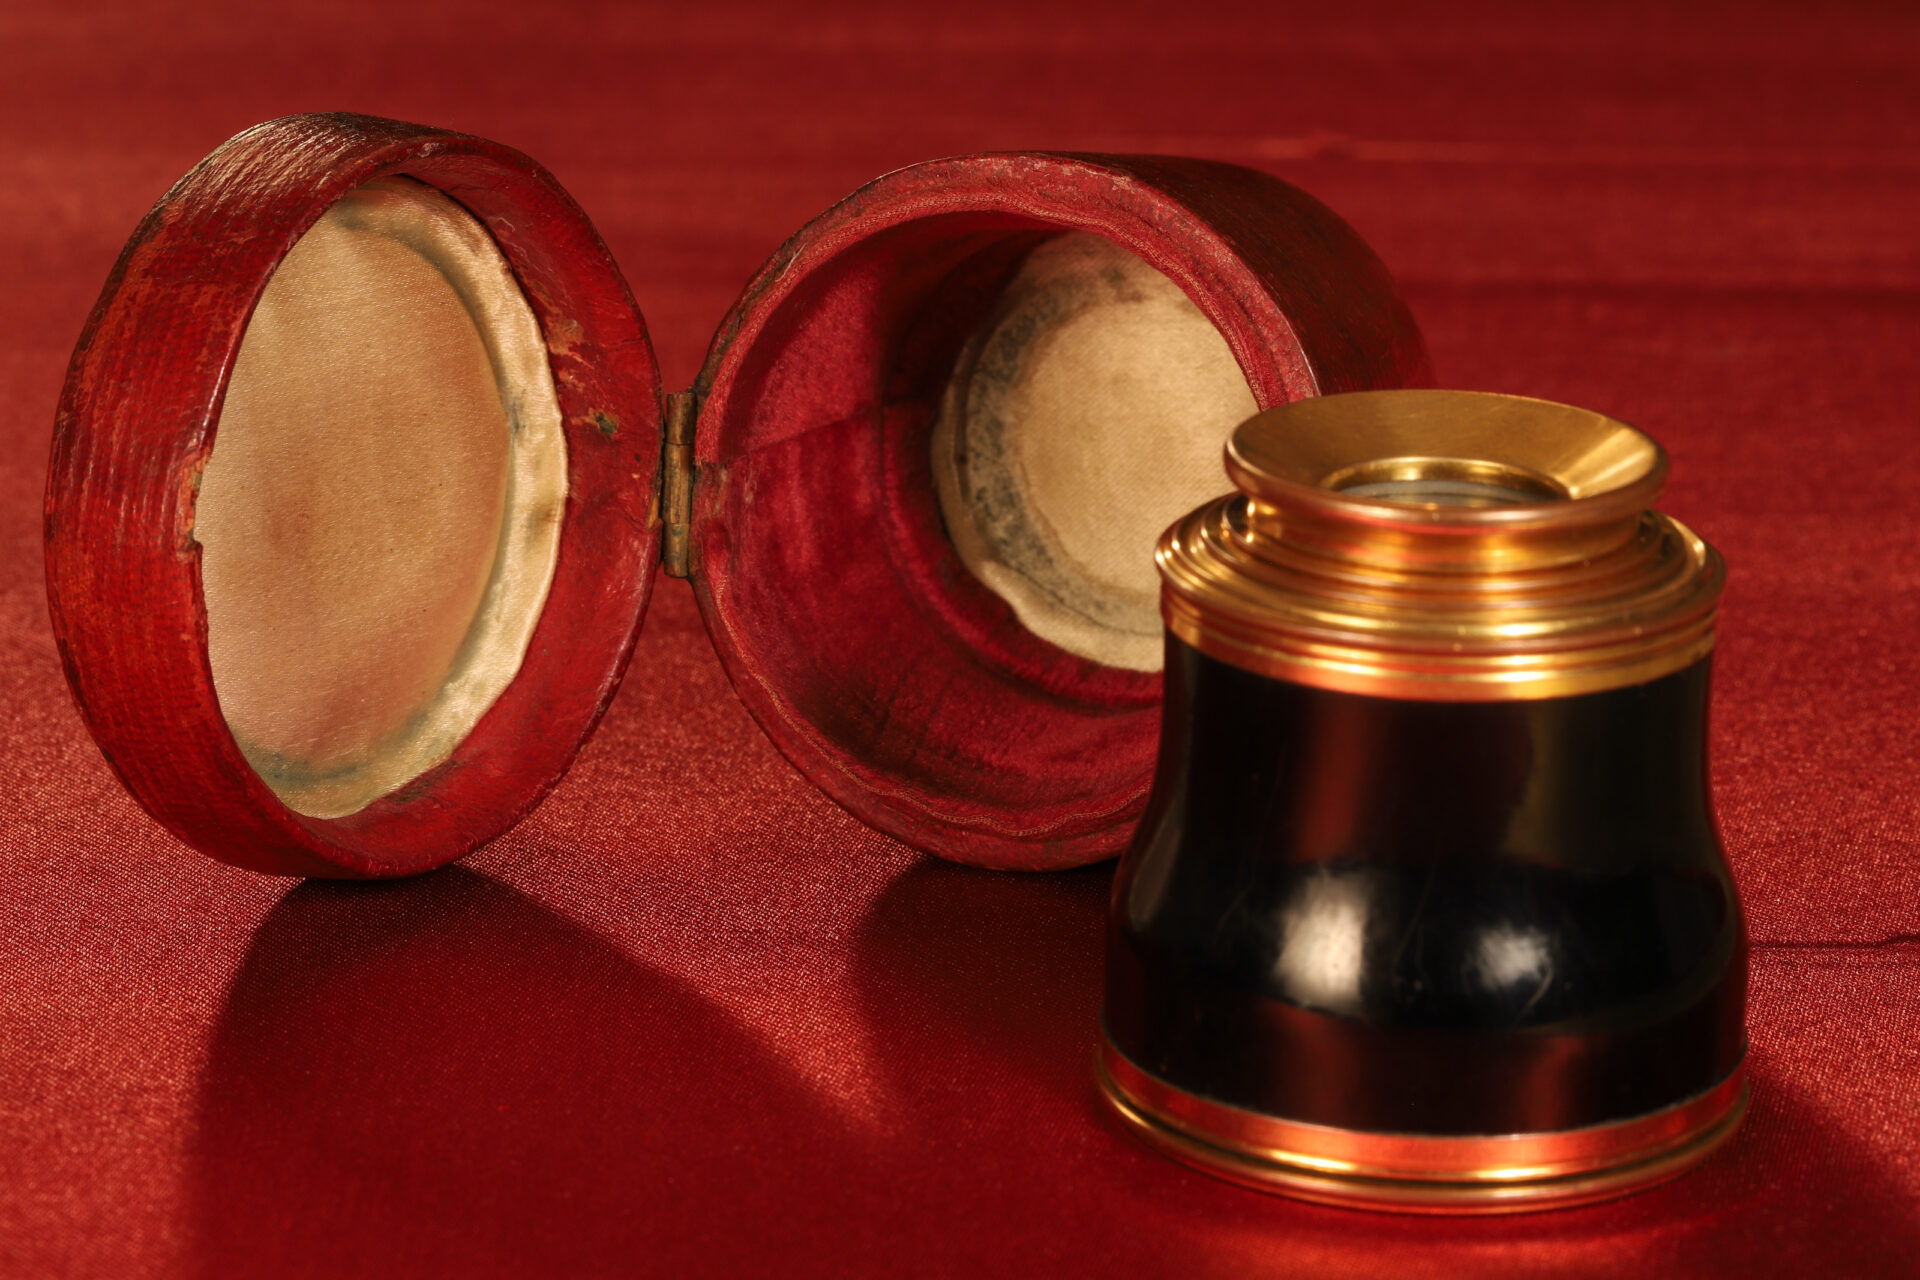 Image of closed Bodson Monocular Spyglass c1825 together with its case